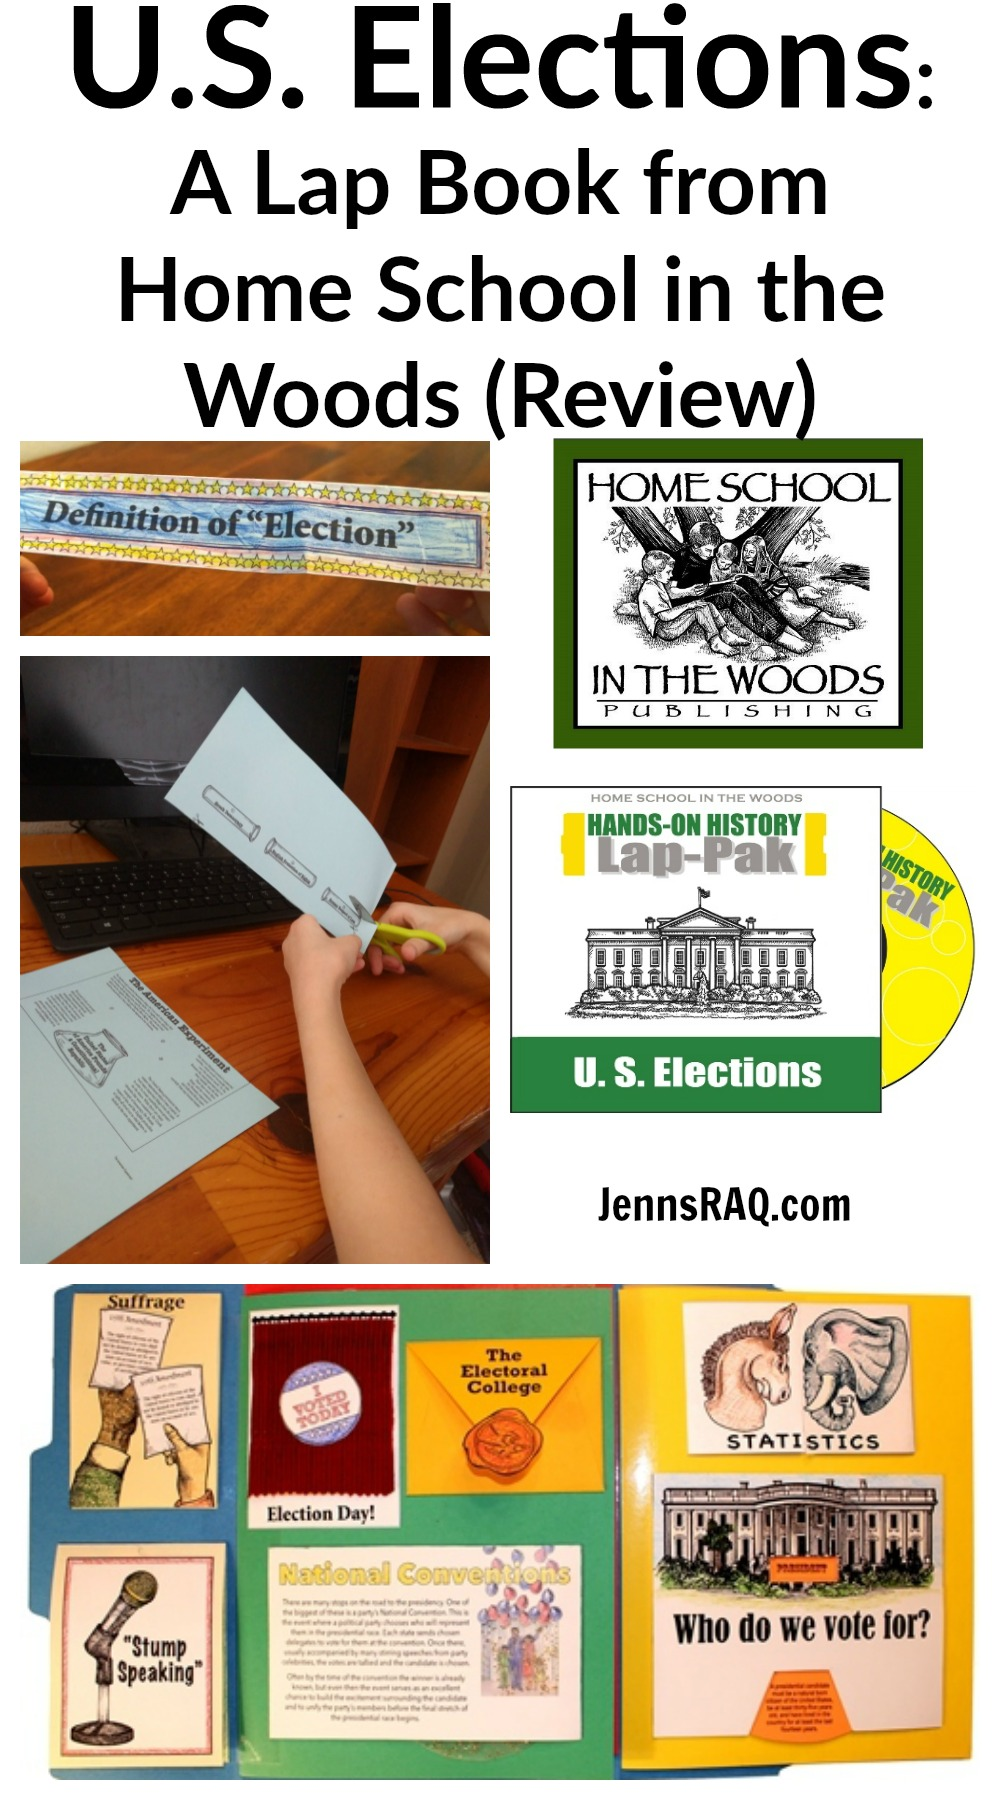 US Elections from Home School in the Woods (Review) as seen on JennsRAQ.com